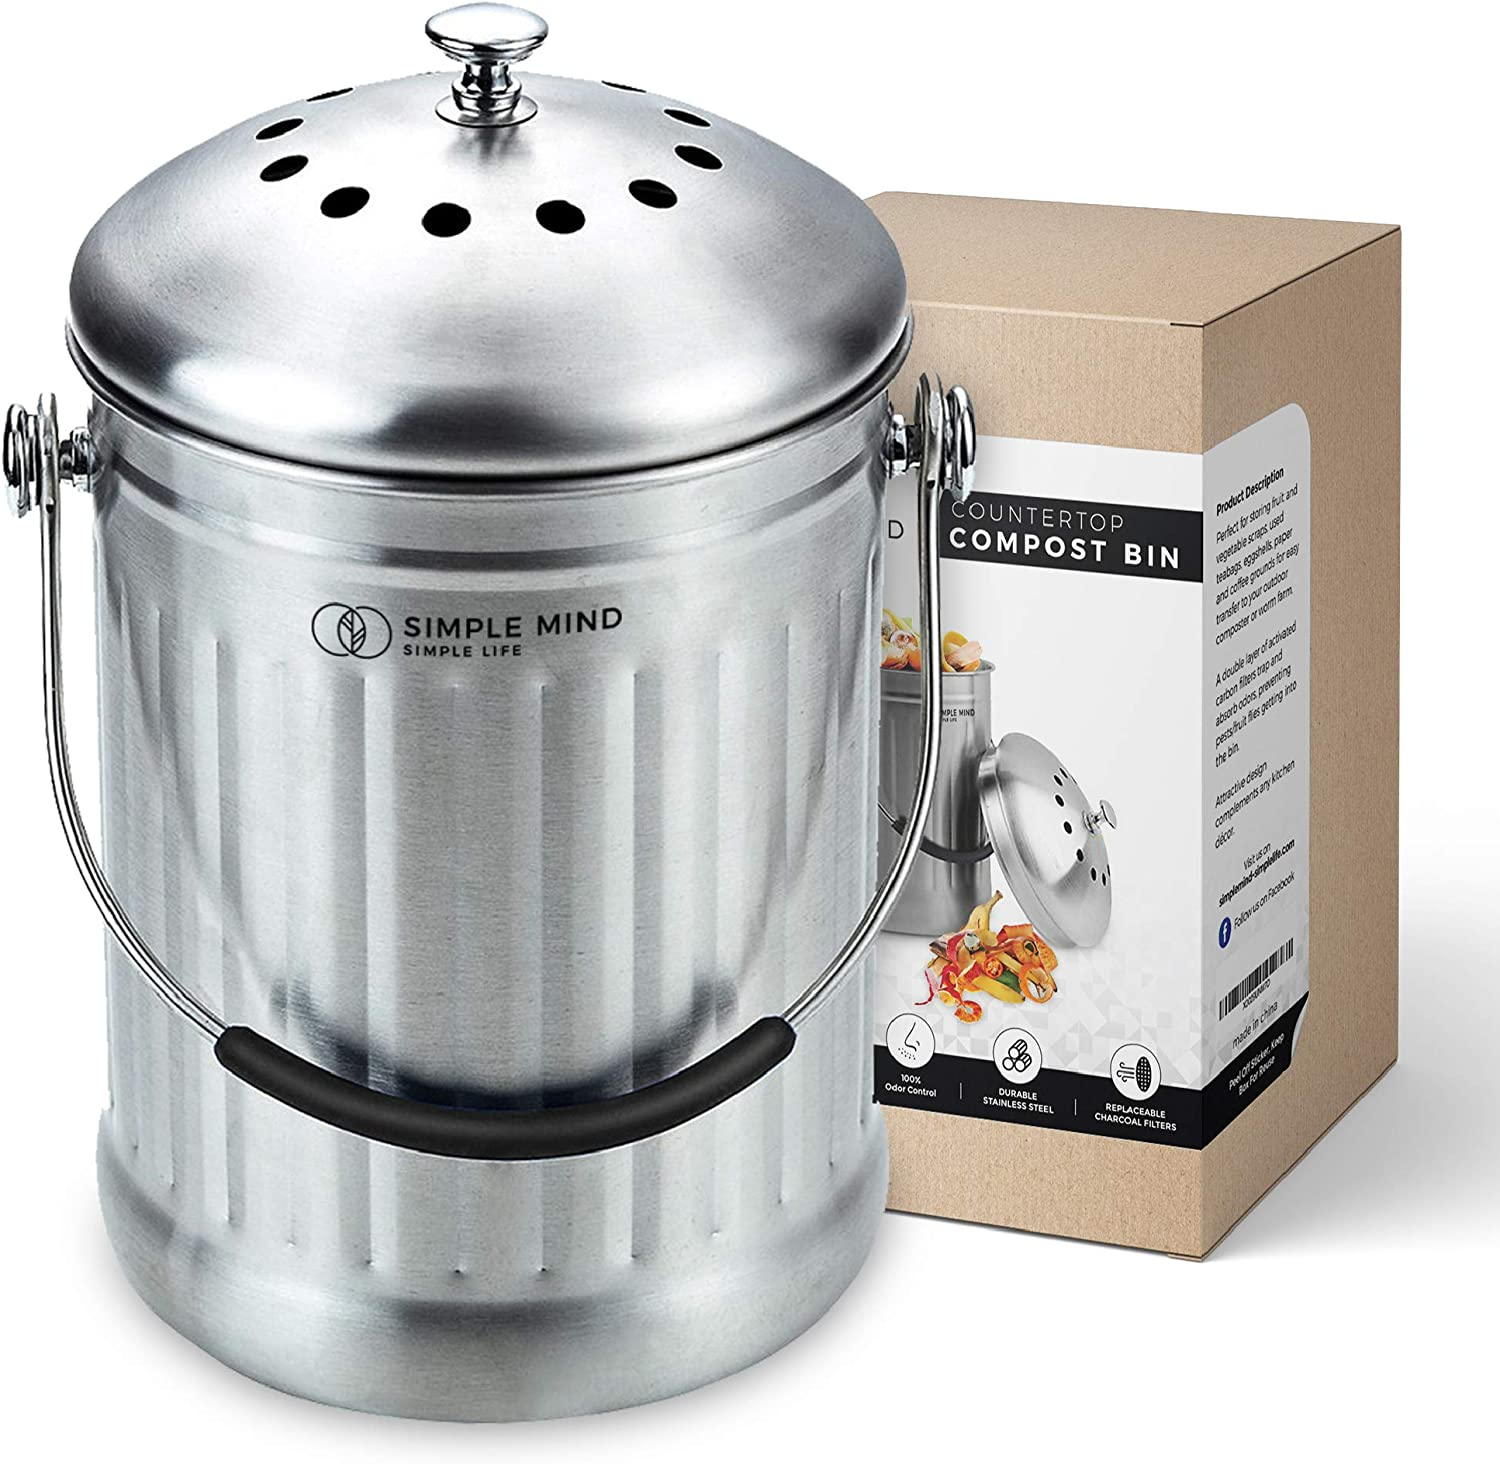 Stylish Countertop Compost Bin, 1.3 Gallon Stainless Steel Compost Bucket, Great Gifts for Gardeners, Compost Trash Can, Small Compost Bin, Compost Pail for Kitchen, Indoor Compost Bucket